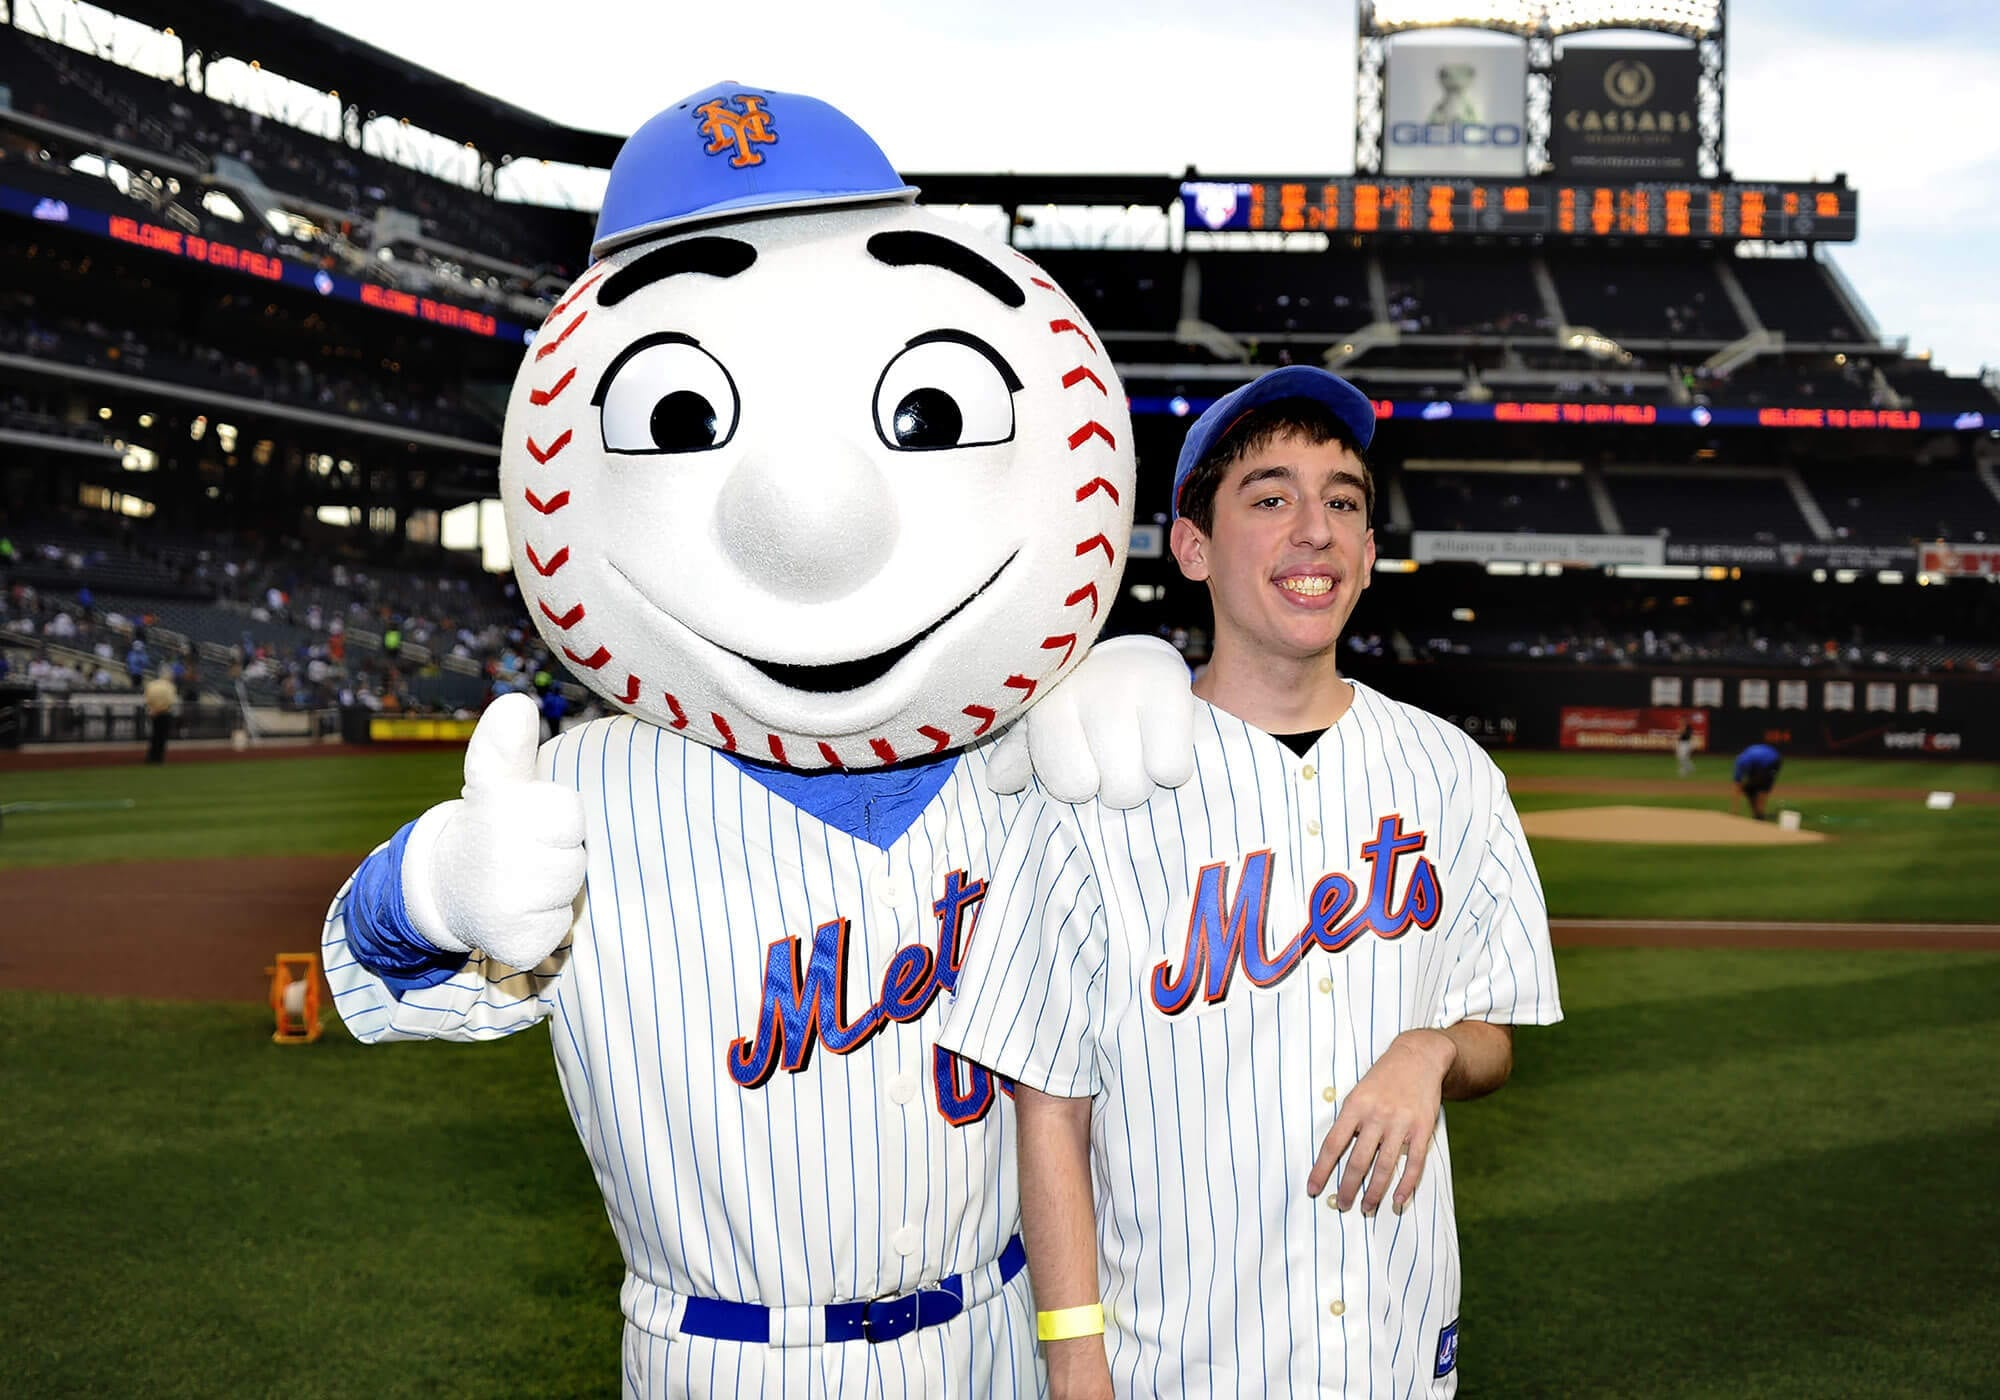 Anthony Giangiobbe Throws First Pitch at Mets Game | AHRC ...